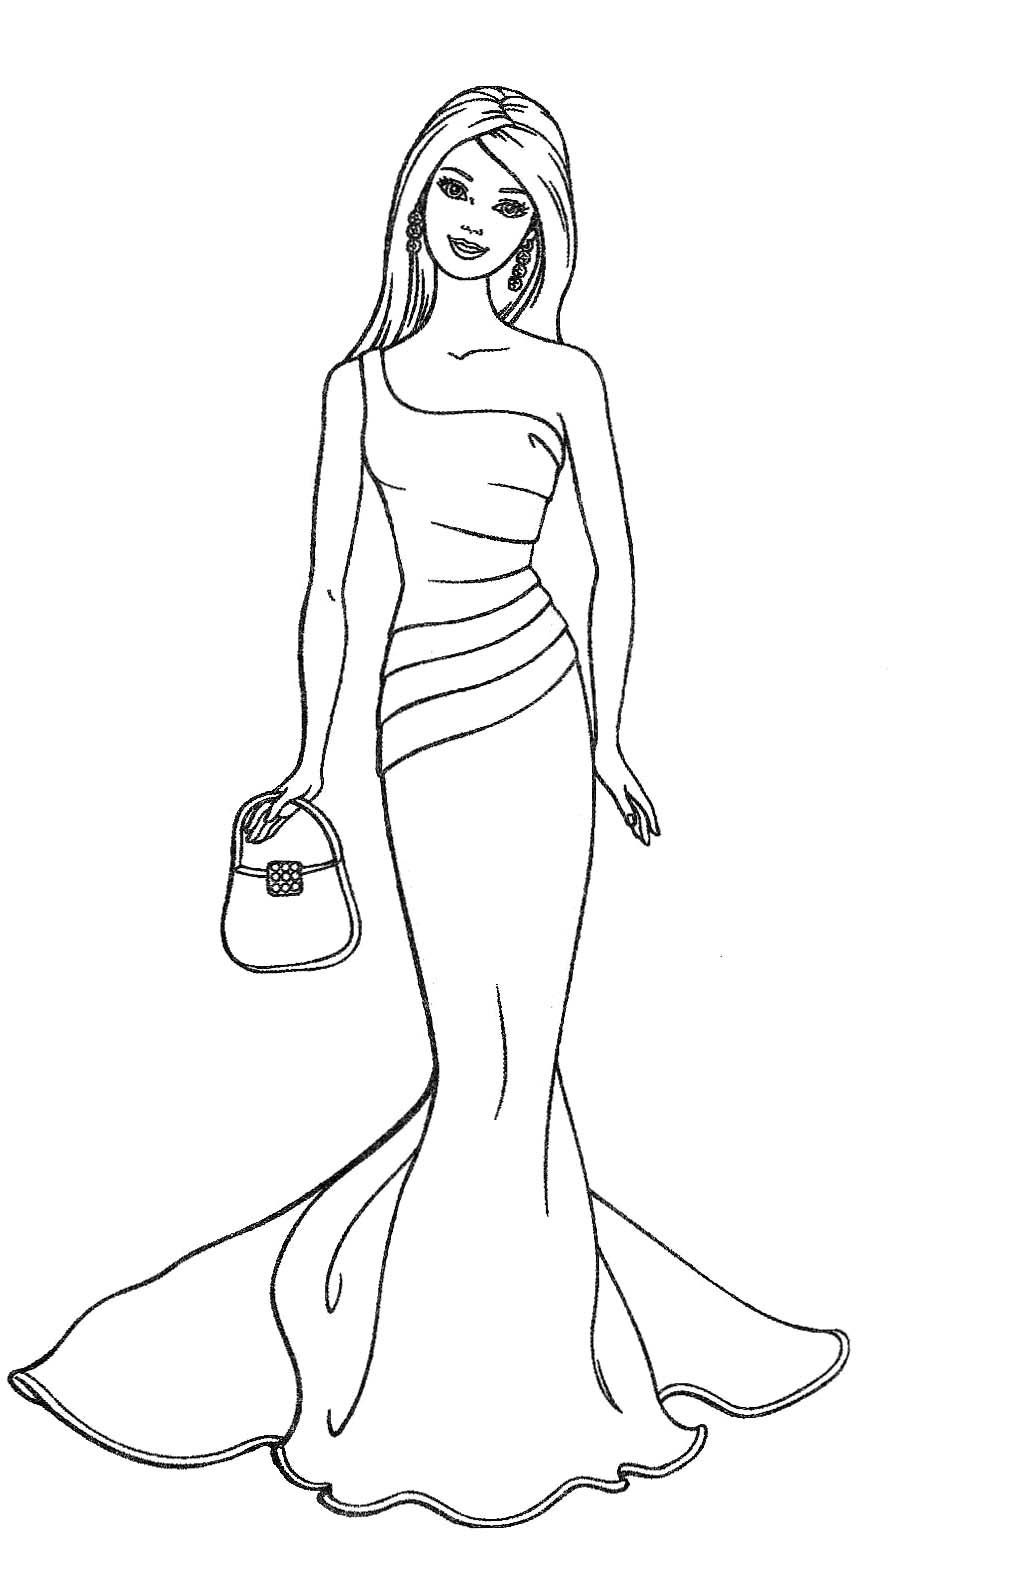 Coloring Pages For Girls Barbie  Barbie Coloring Pages Printable To Download